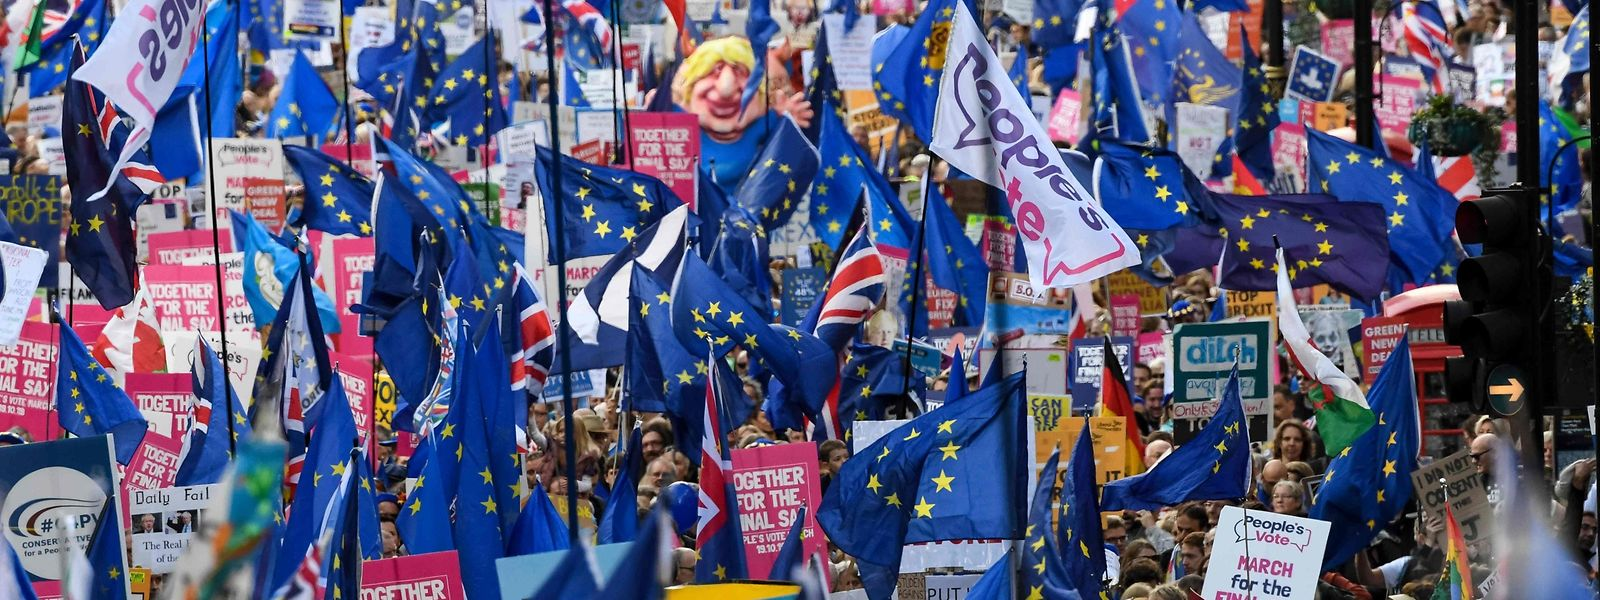 """TOPSHOT - Demonstrators hold placards and EU and Union flags as they take part in a march by the People's Vote organisation in central London on October 19, 2019, calling for a final say in a second referendum on Brexit. - Thousands of people march to parliament calling for a """"People's Vote"""", with an option to reverse Brexit as MPs hold a debate on Prime Minister Boris Johnson's Brexit deal. (Photo by Niklas HALLE'N / AFP)"""